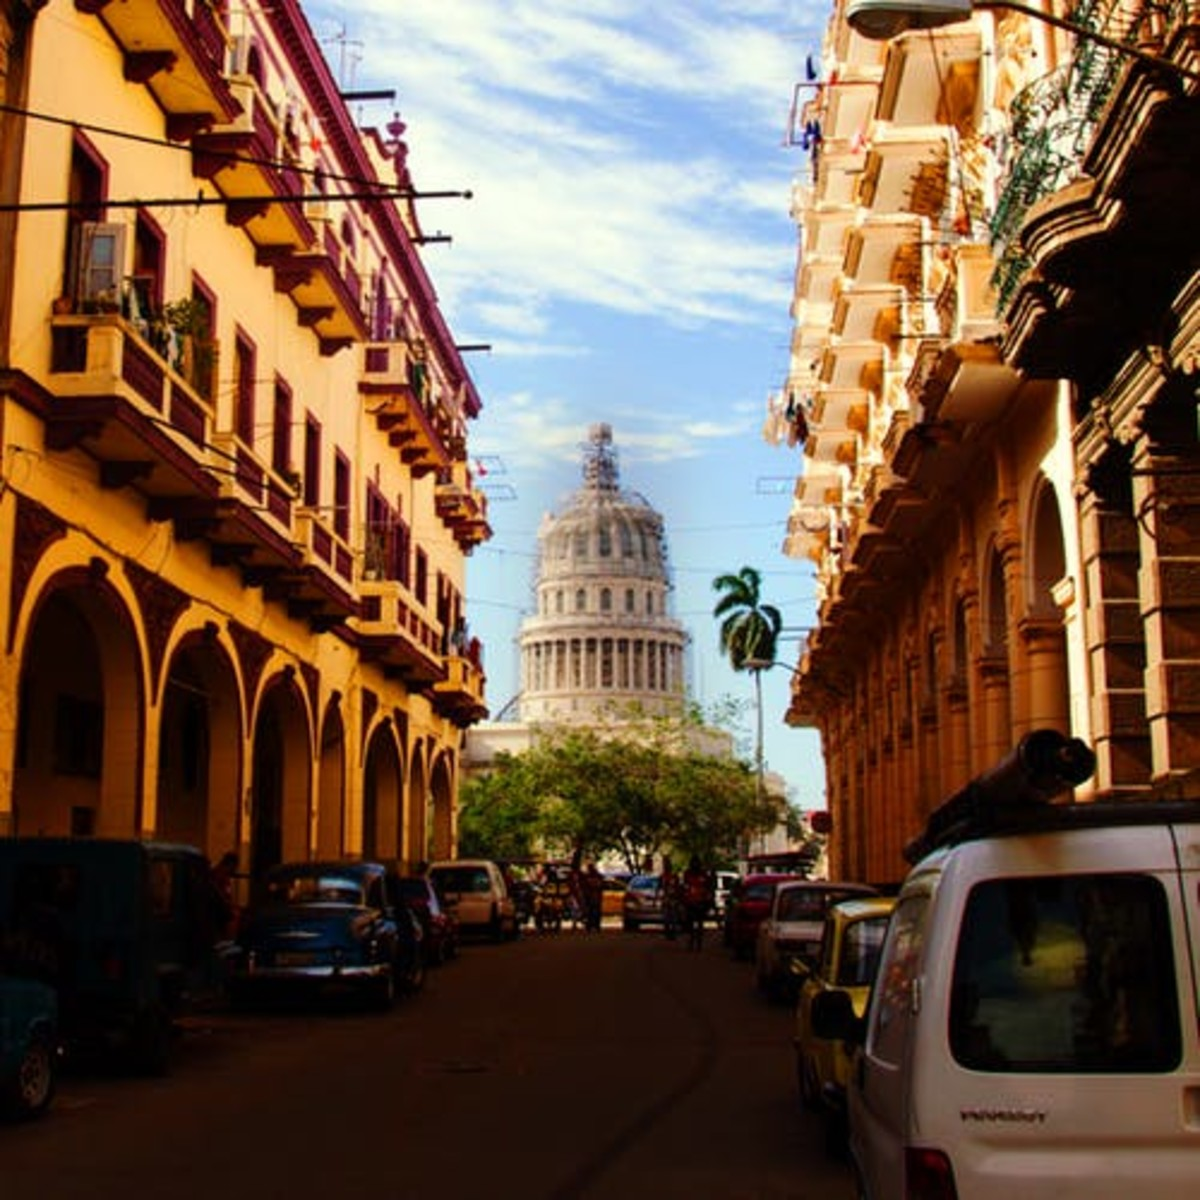 Like many Latin American cities, Havana has a old quarter, filled with many colonial architectural masterpieces.